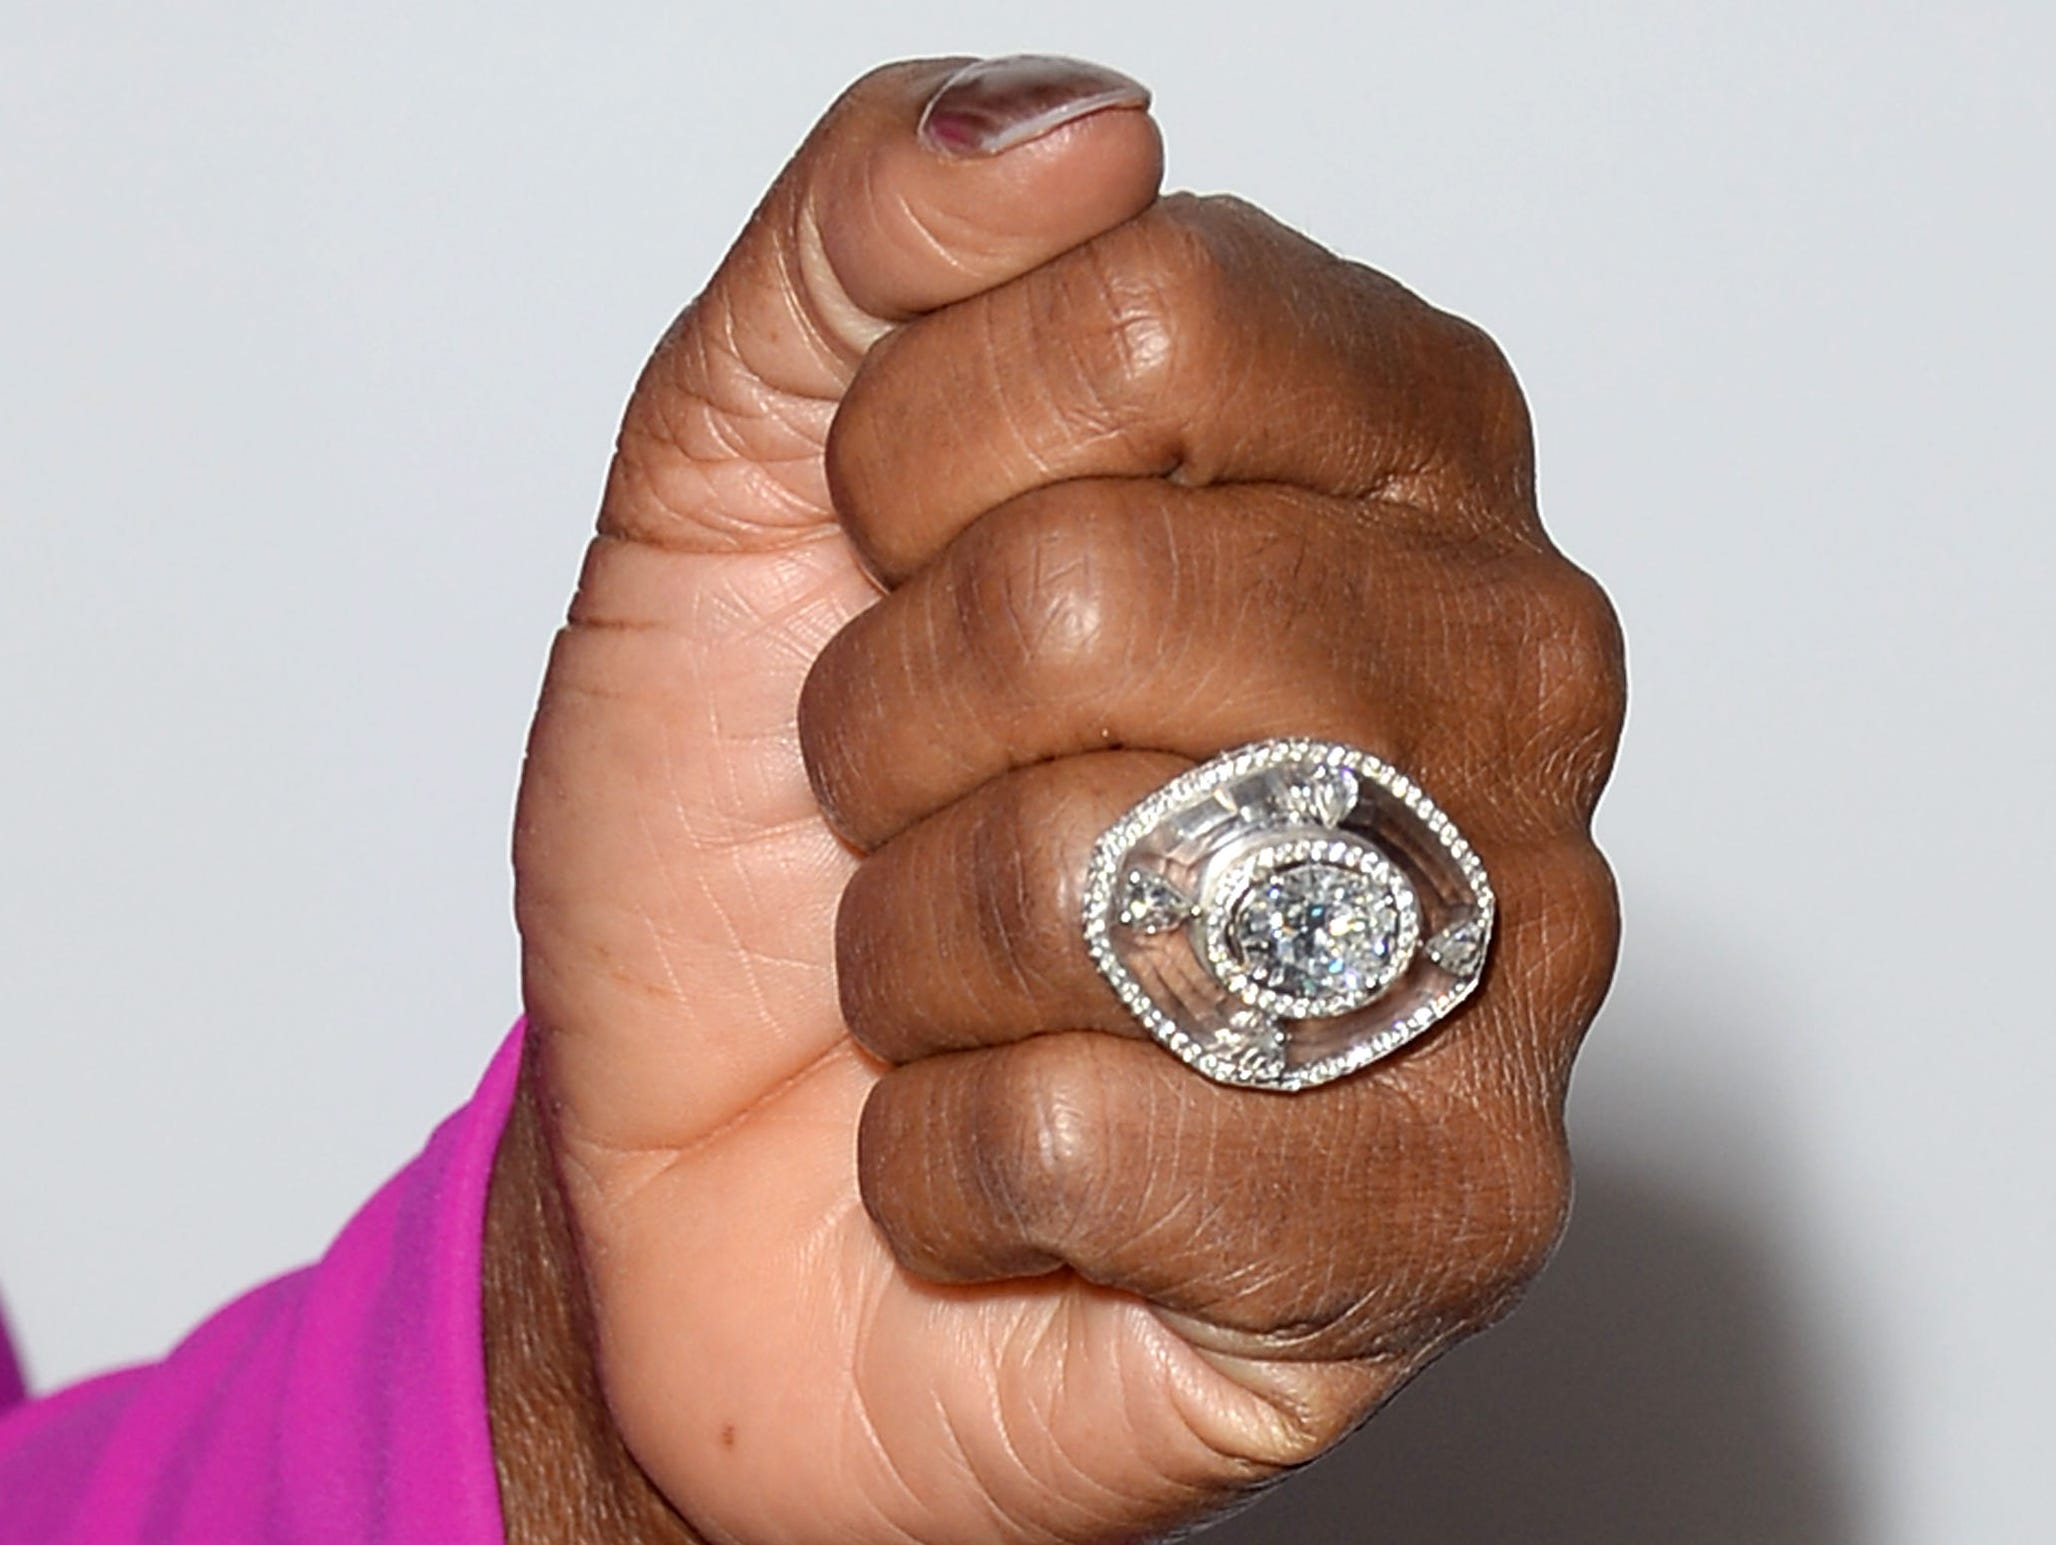 Bam! The media icon makes a major statement with a huge, sure-to-be-chock-full-of-diamonds cocktail ring. Care to guess the price tag on that bauble?!